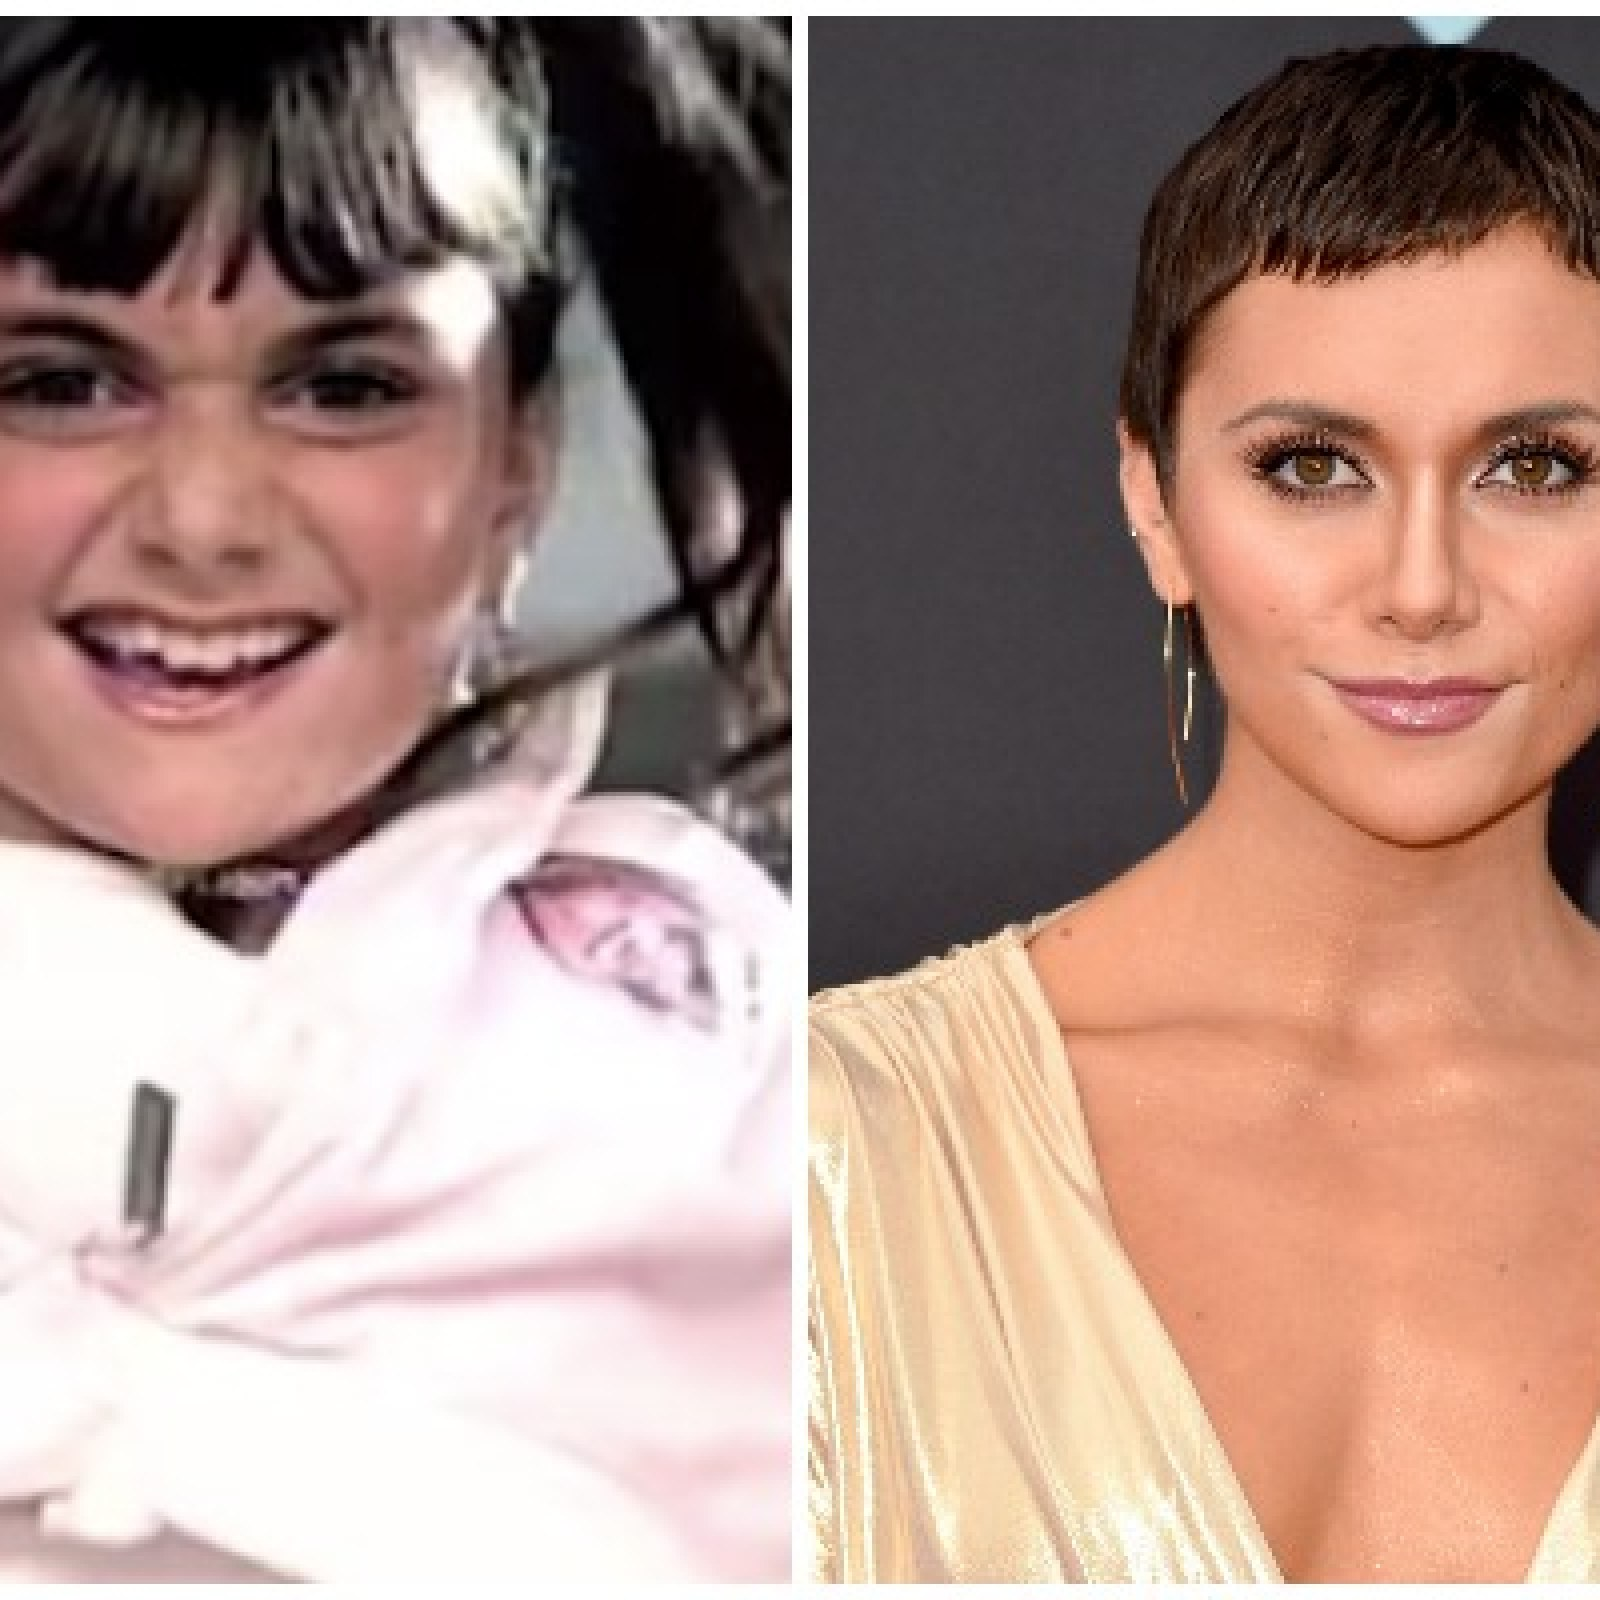 Allyson Is Watching alyson stoner vma performance: fans thrilled as 'iconic